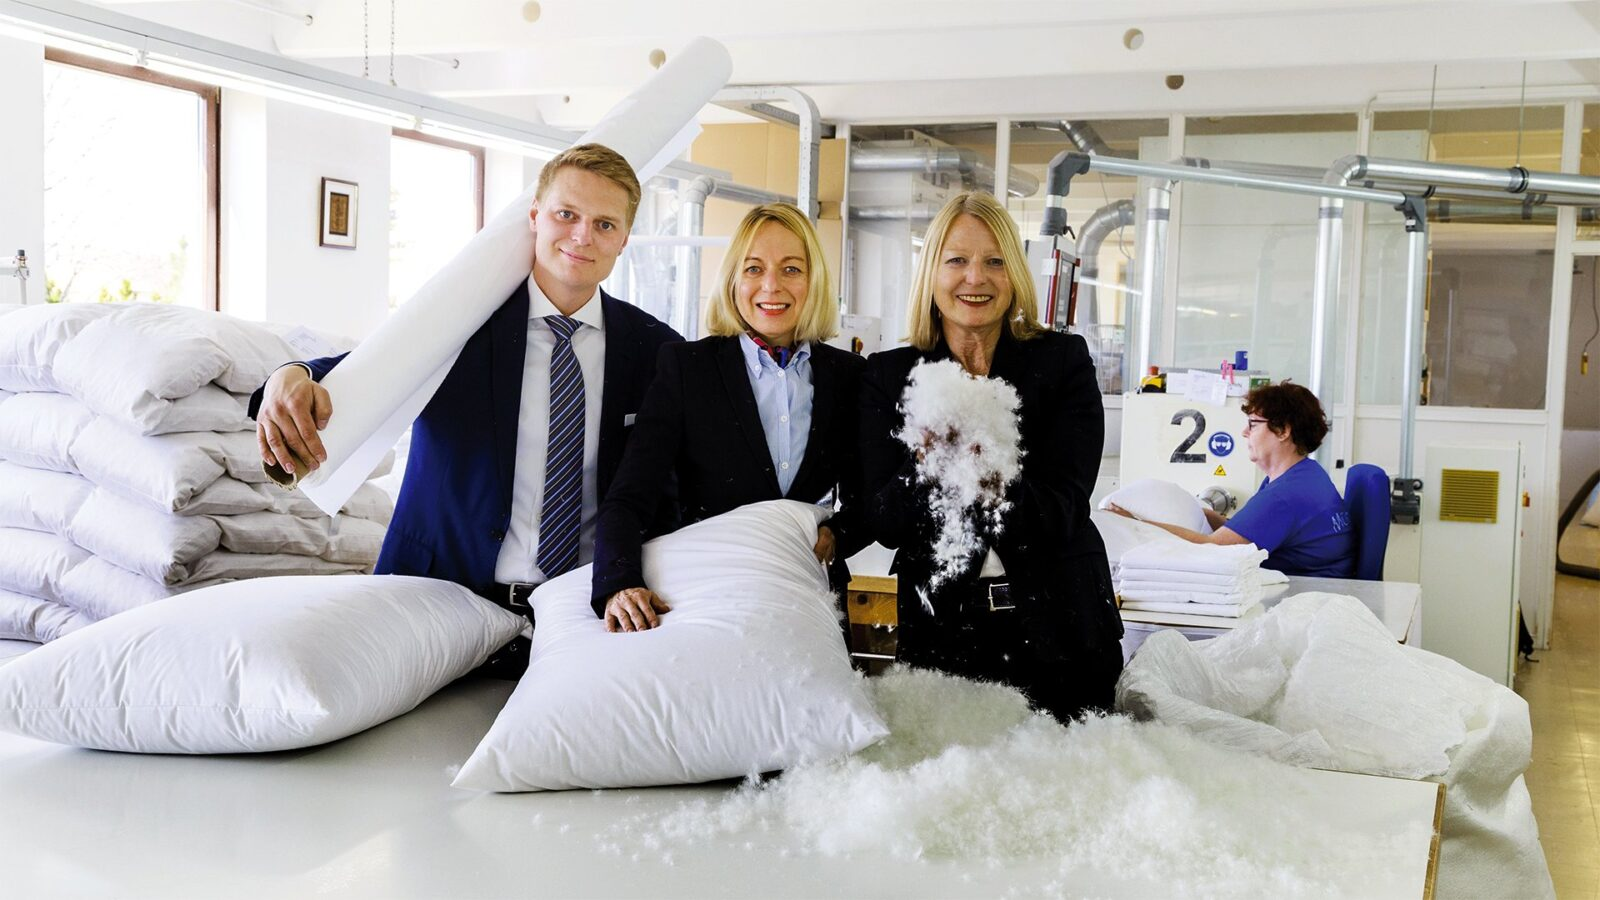 Mühldorfer pillows and bedding being made